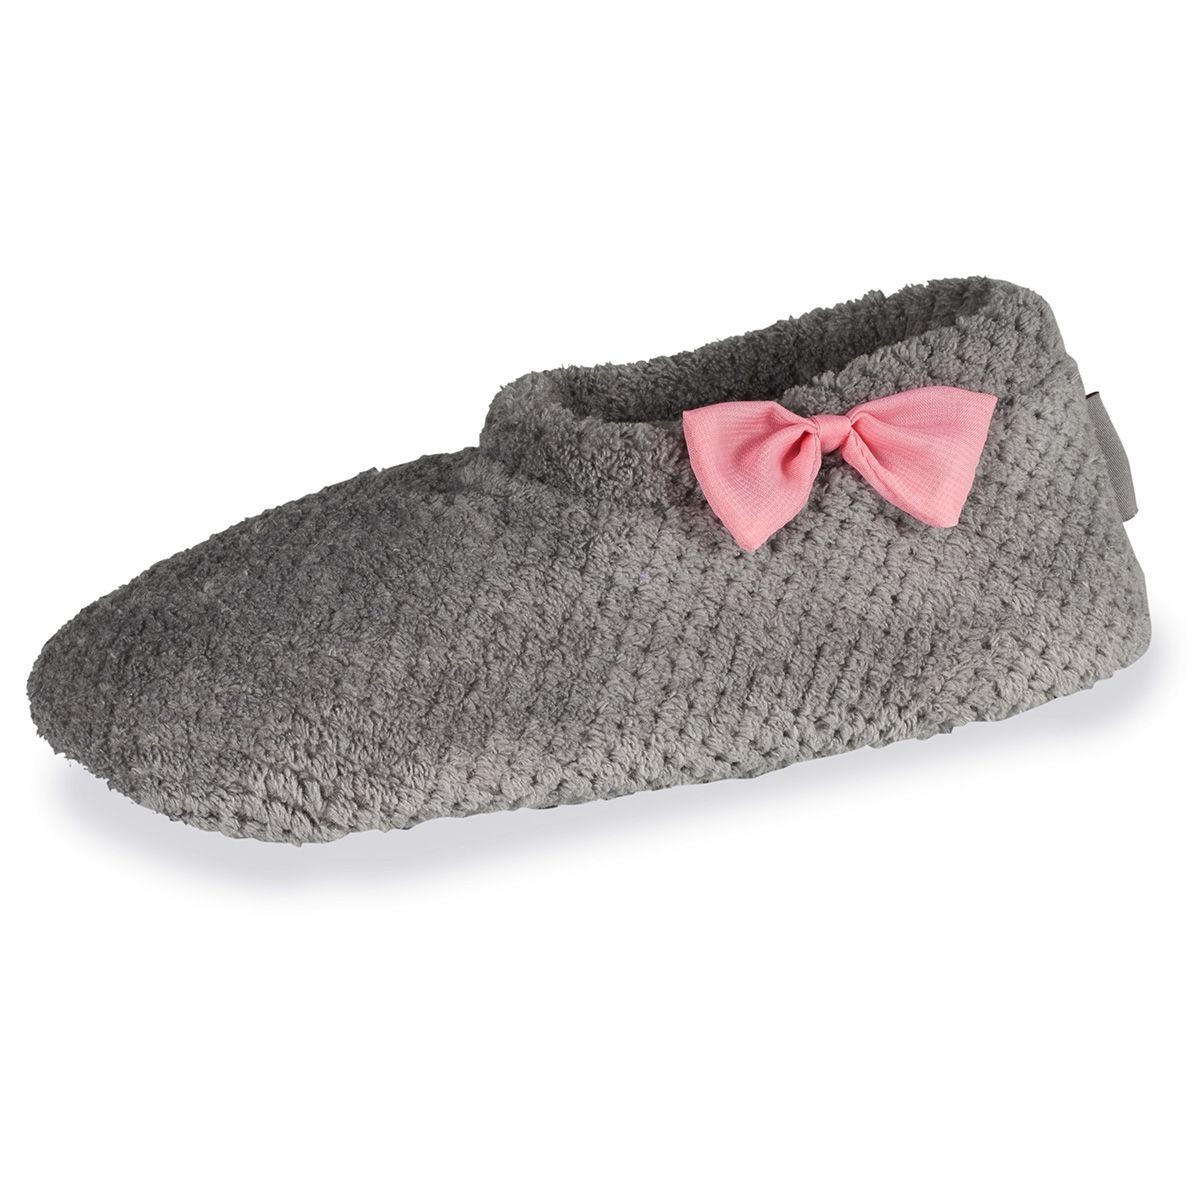 Chaussons bottillons femme nud organza | Products | Slippers